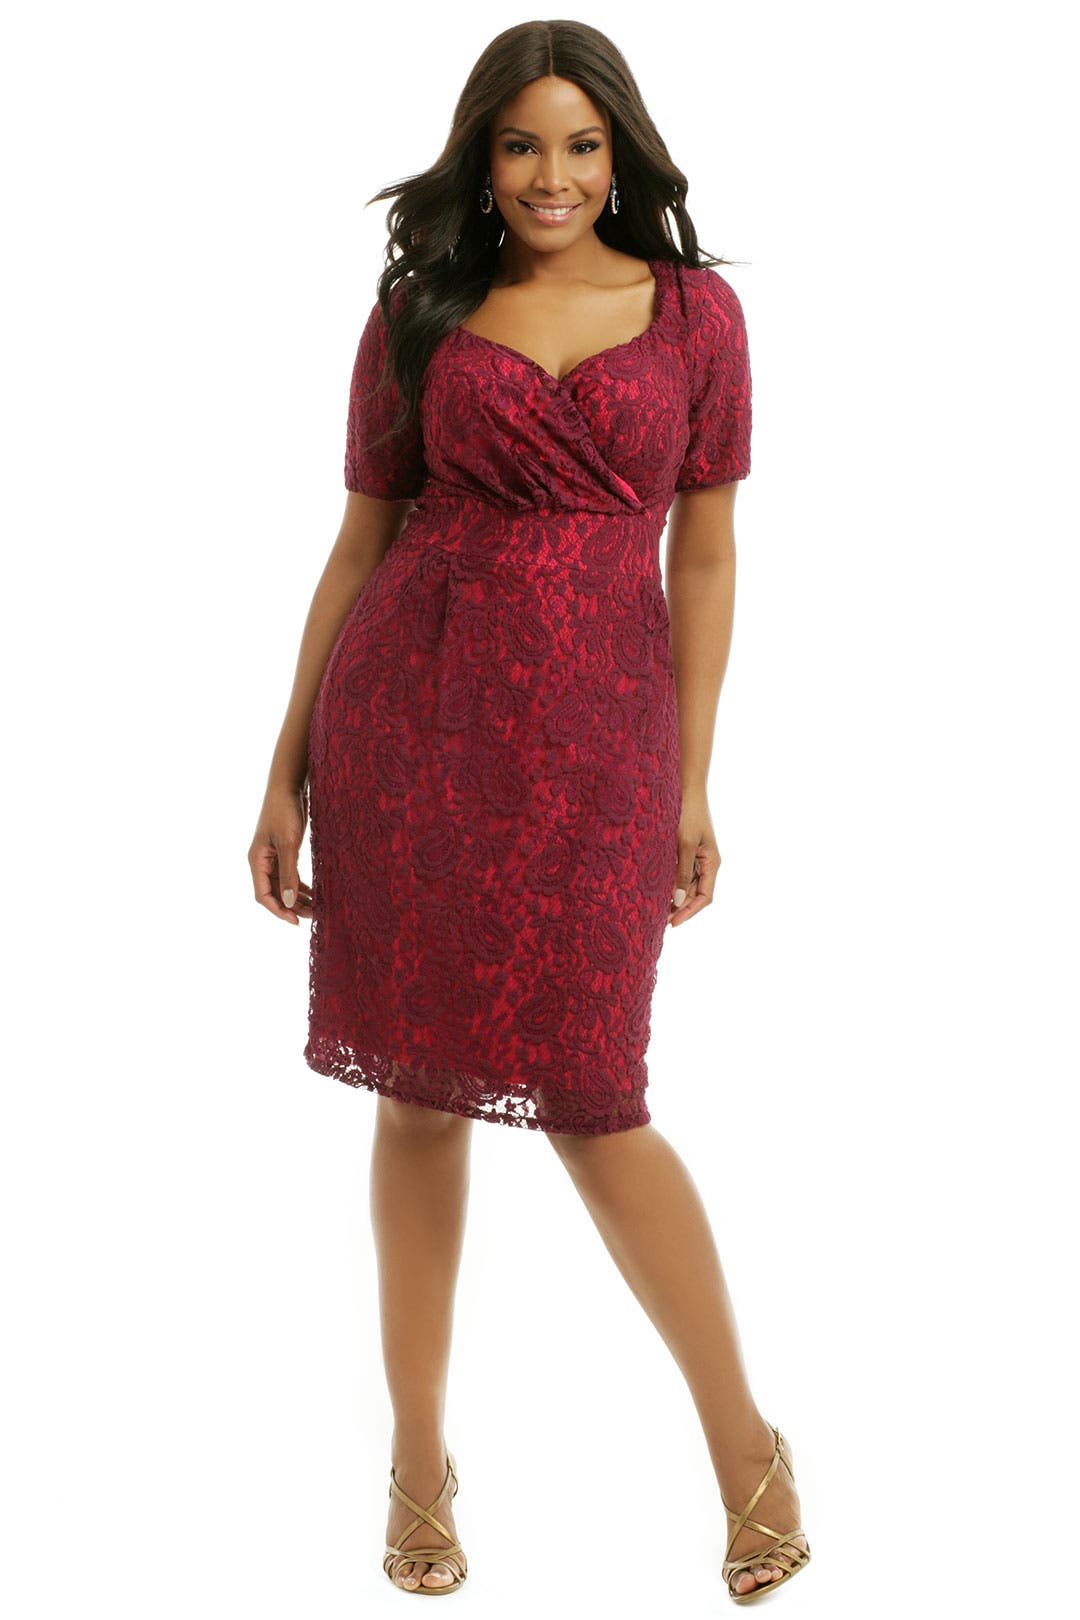 Berry Melina Dress by Igigi